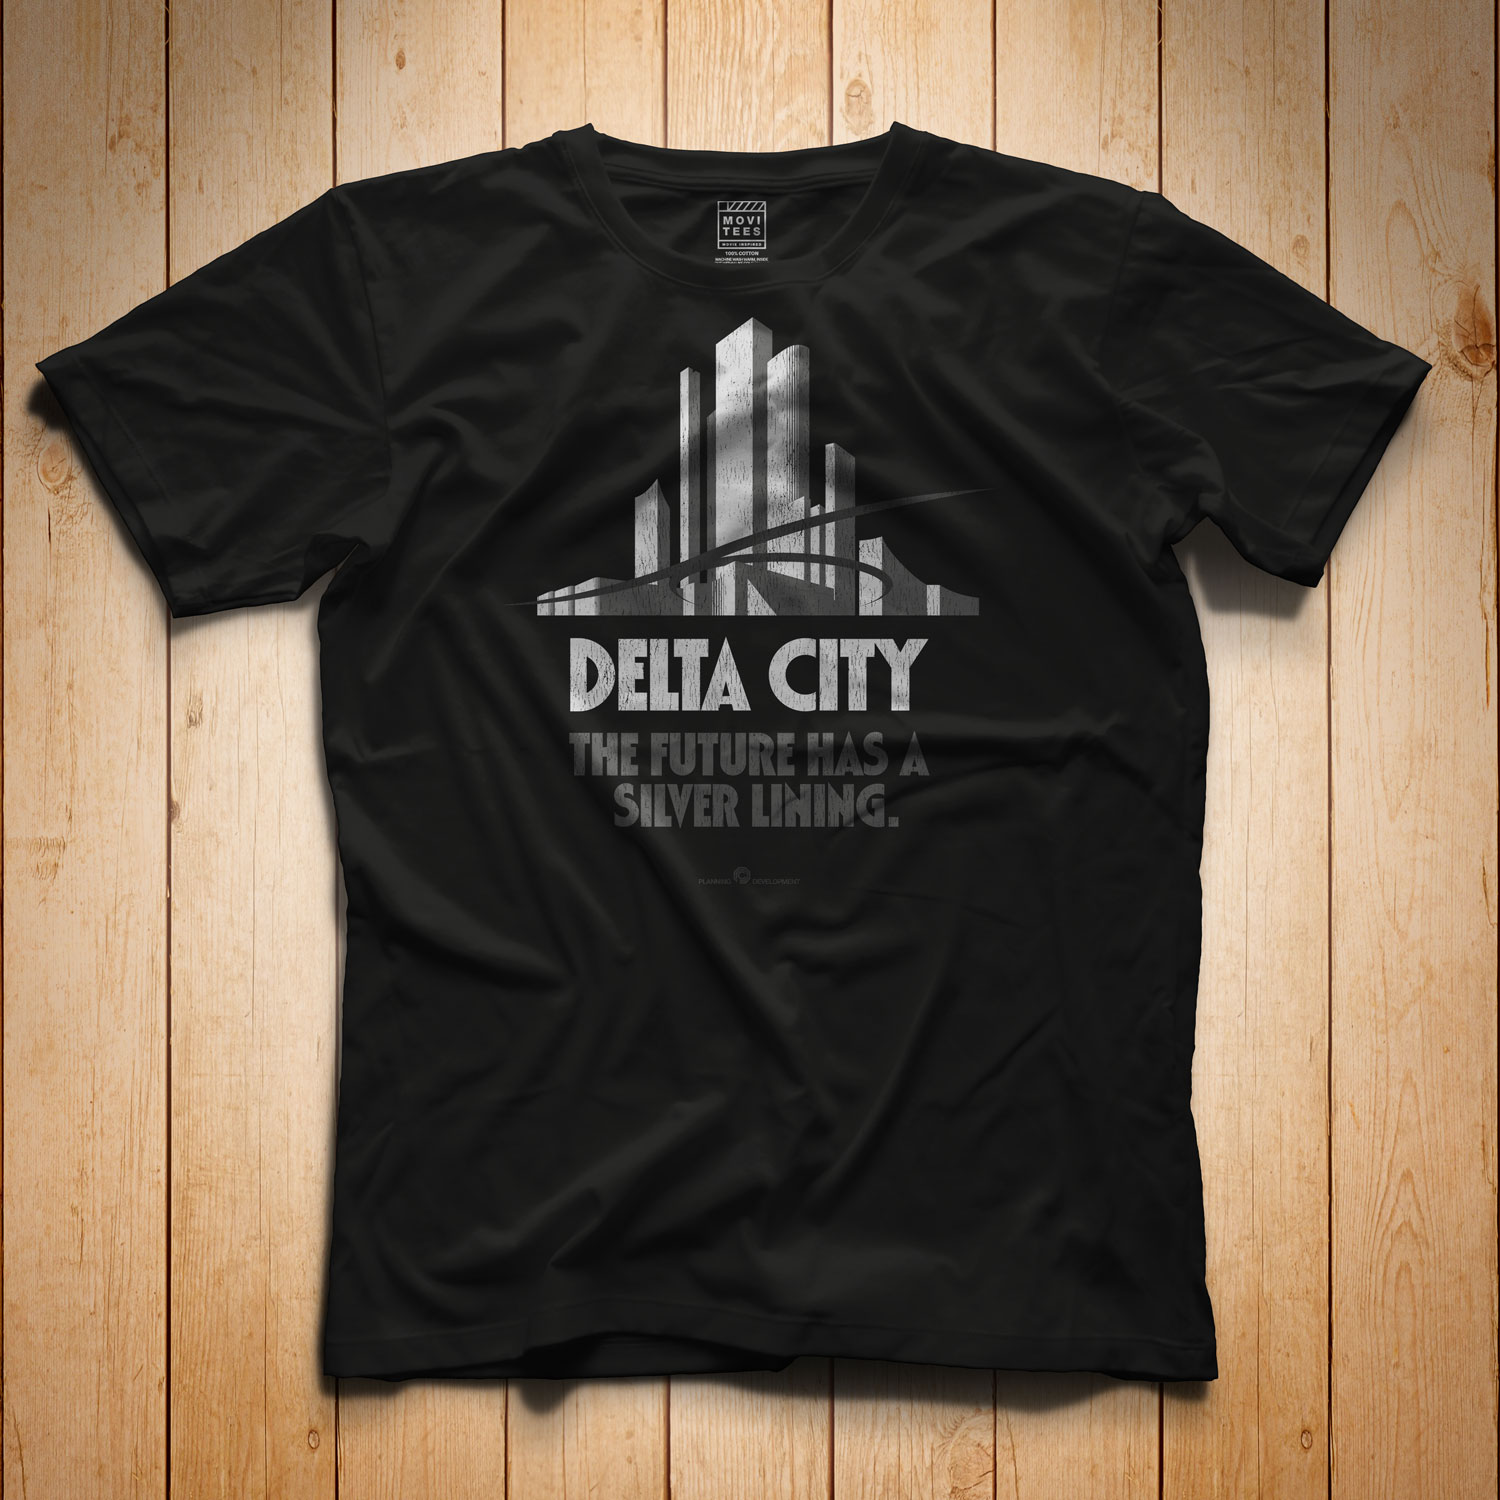 Delta-City-Robocop-Inspired-TShirt-by-MoviTees_B.jpg